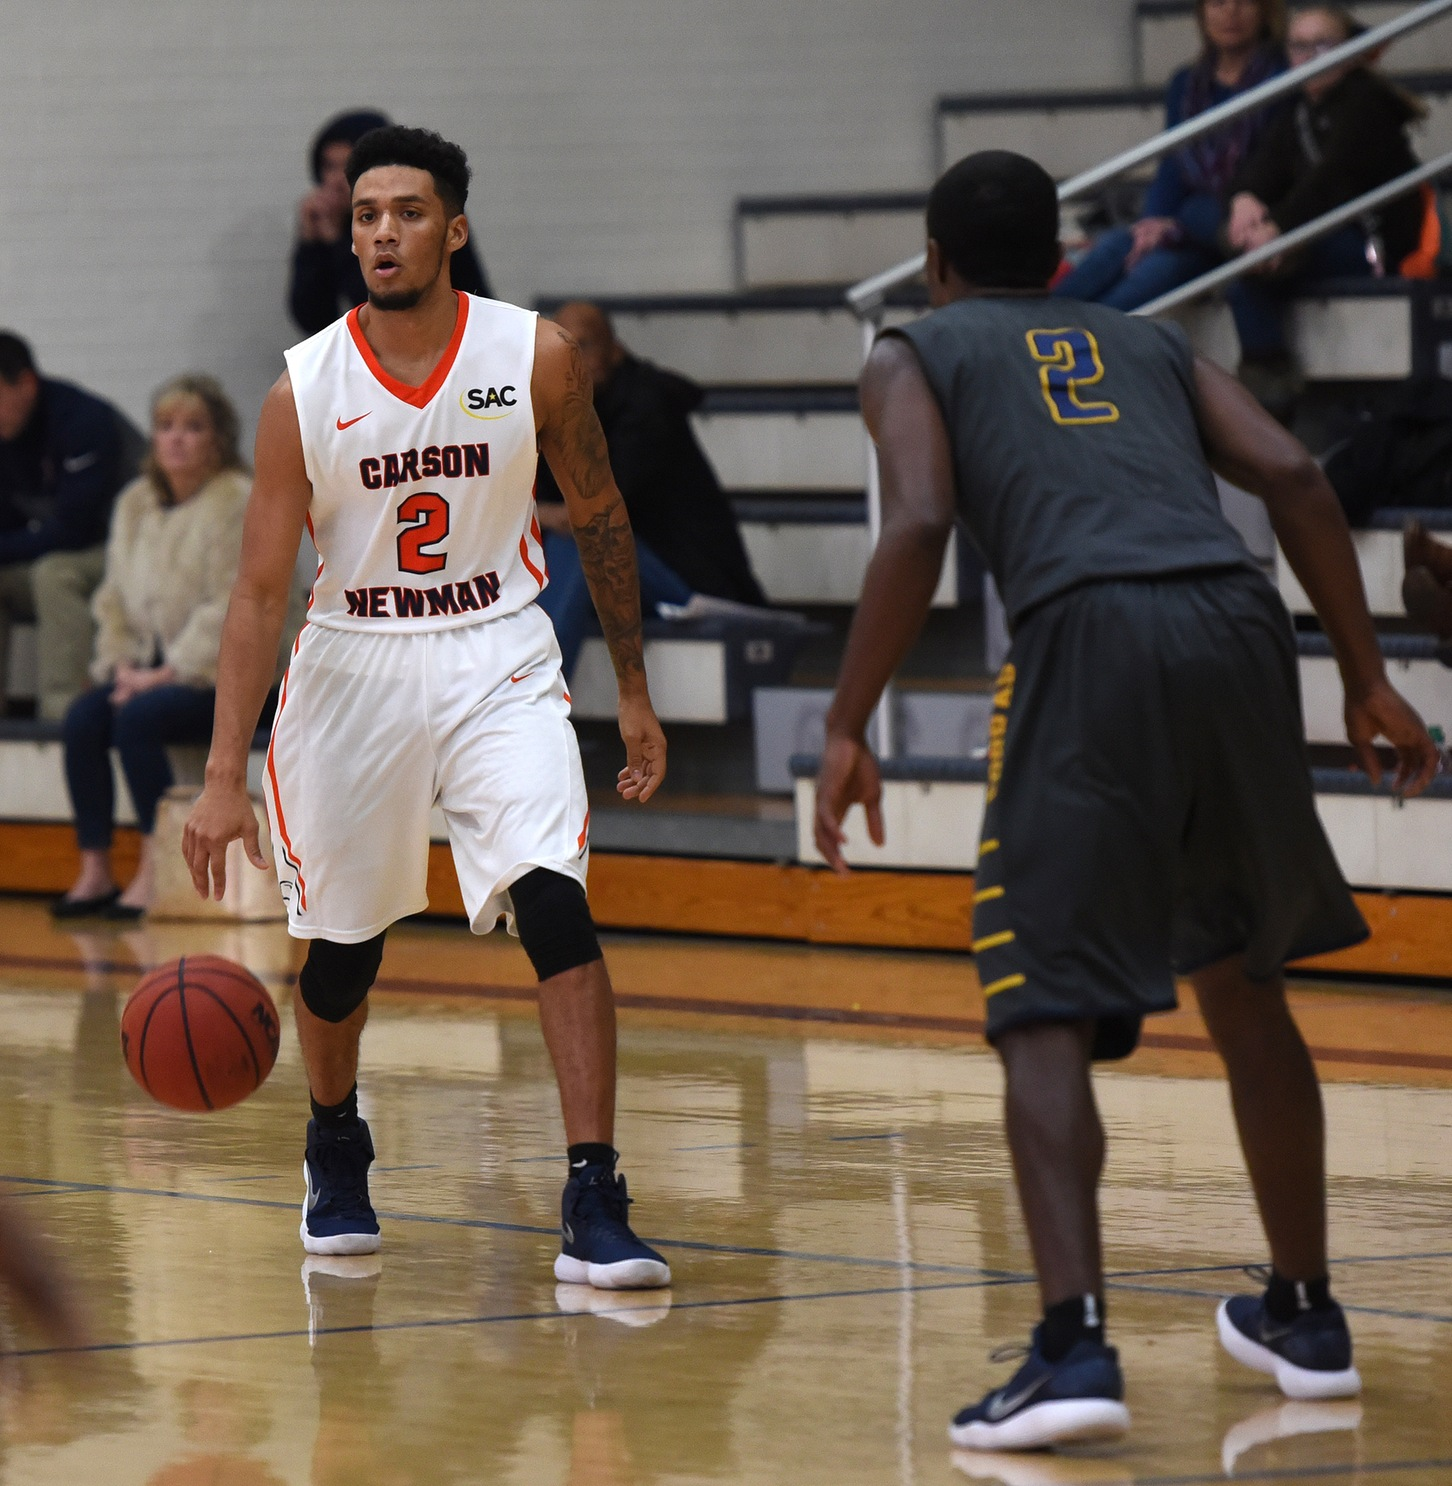 Carson-Newman takes longest road trip of the season with lengthy jaunt to Coker